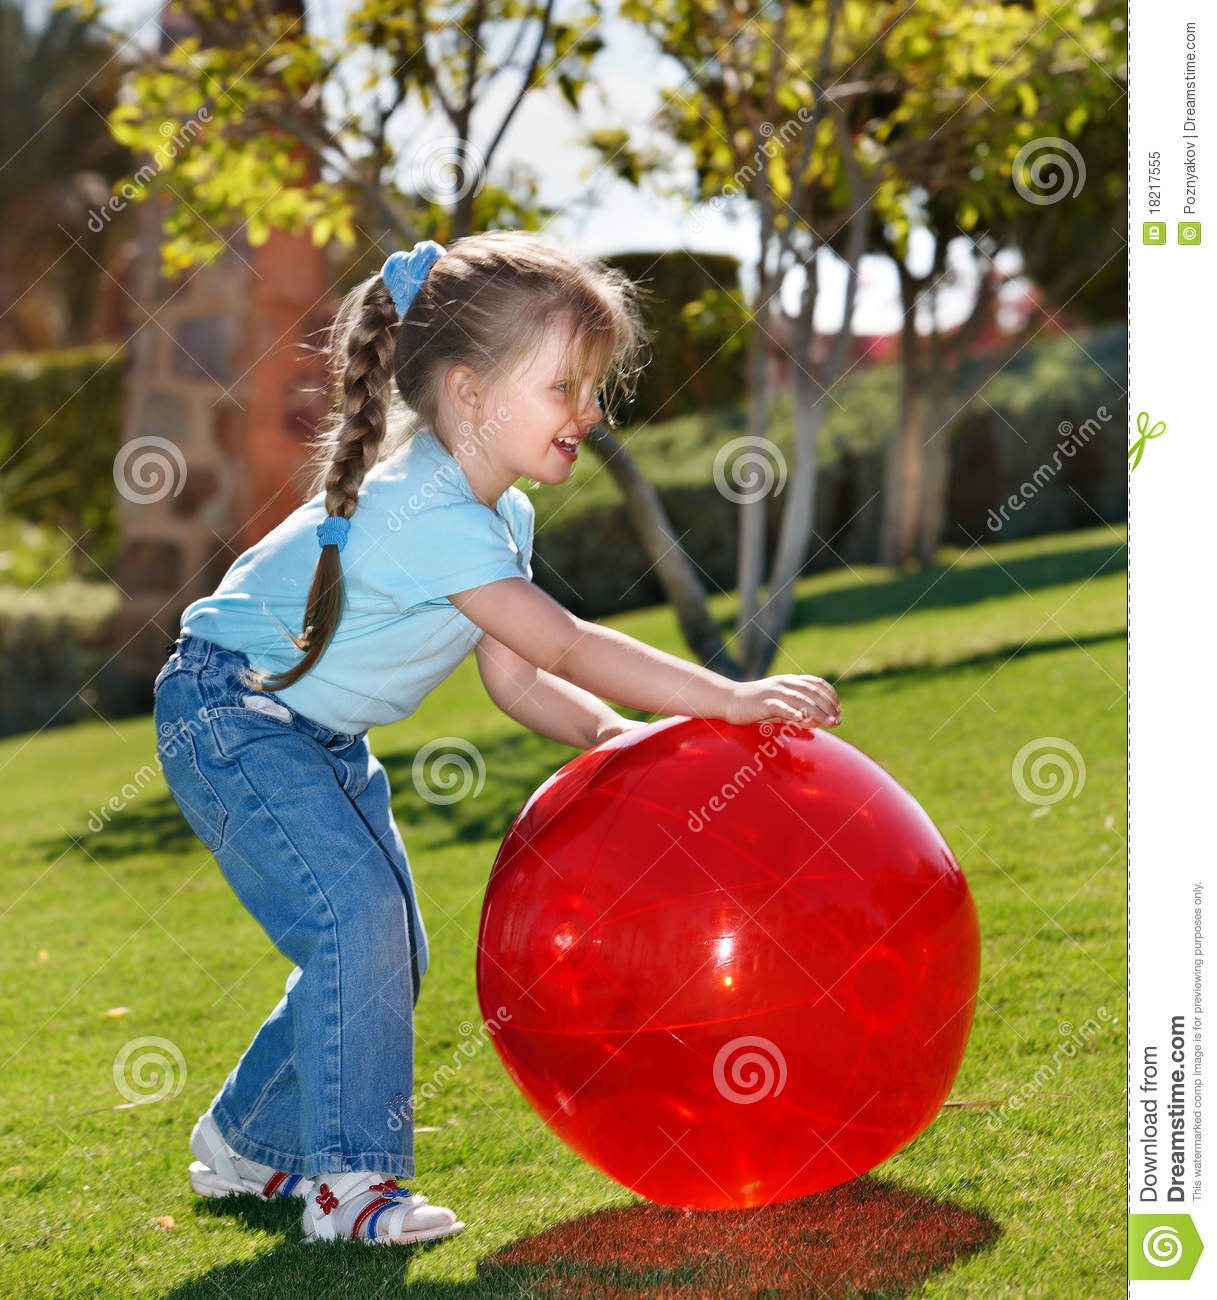 little girl play with ball in the park stock image image 18217555. Black Bedroom Furniture Sets. Home Design Ideas